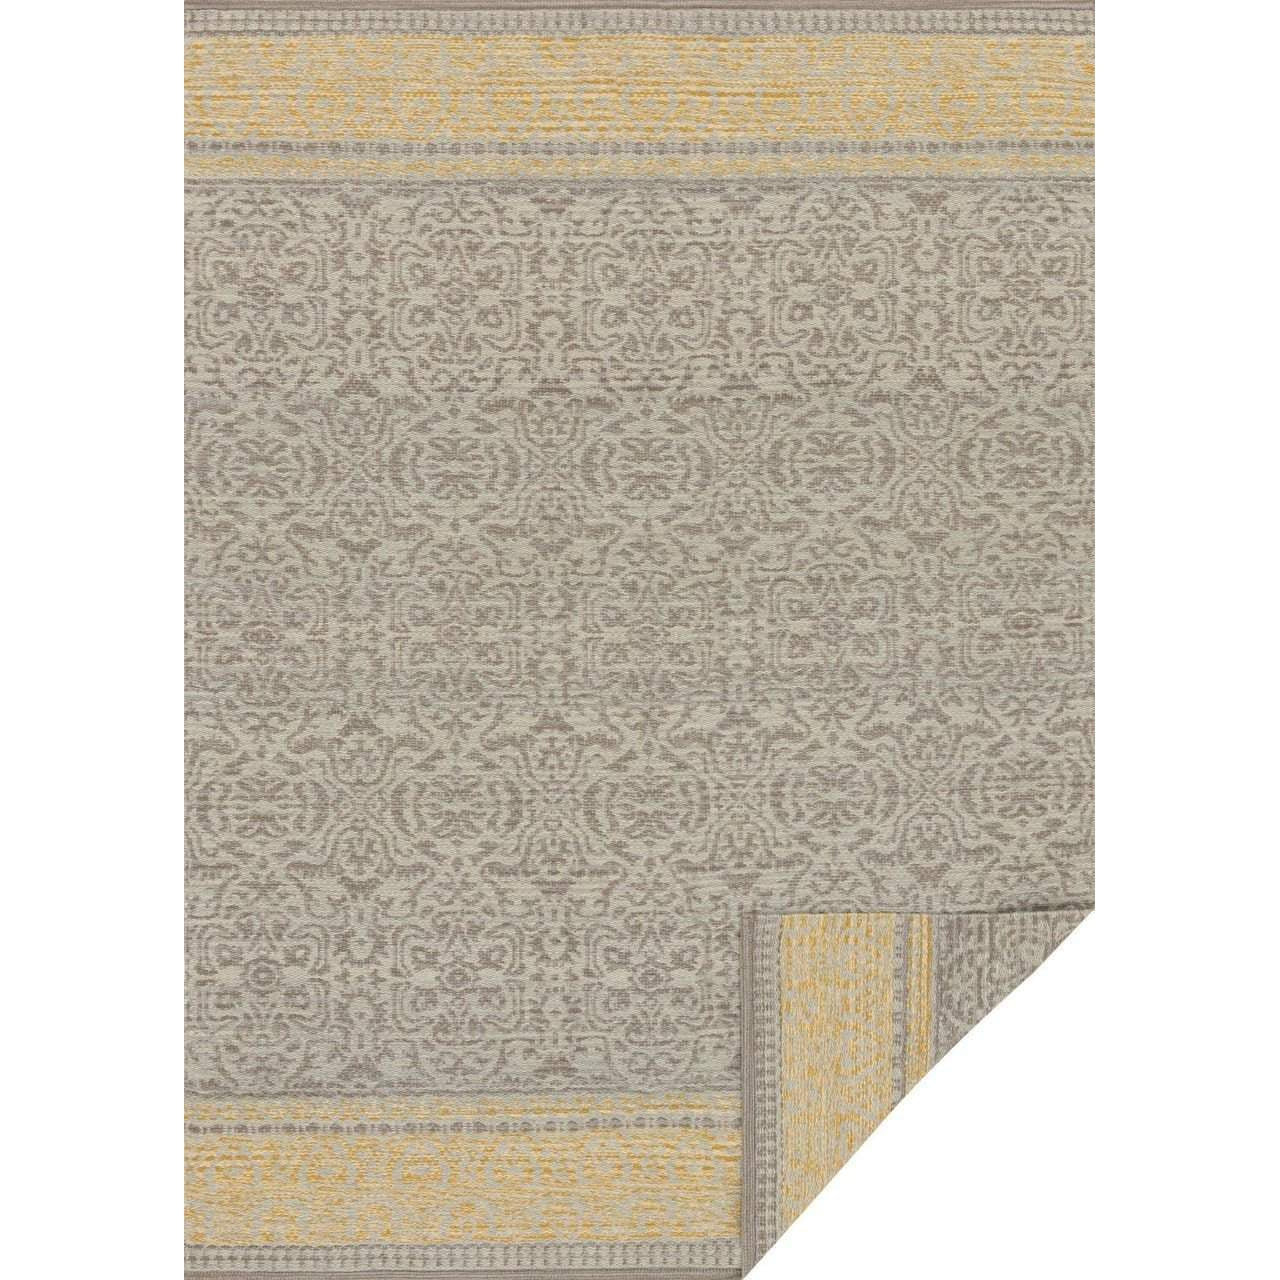 Joanna Gaines Rugs of Magnolia Home Rug Collection - Emmie Kay Collection - Grey / Maize - Blue Hand Home